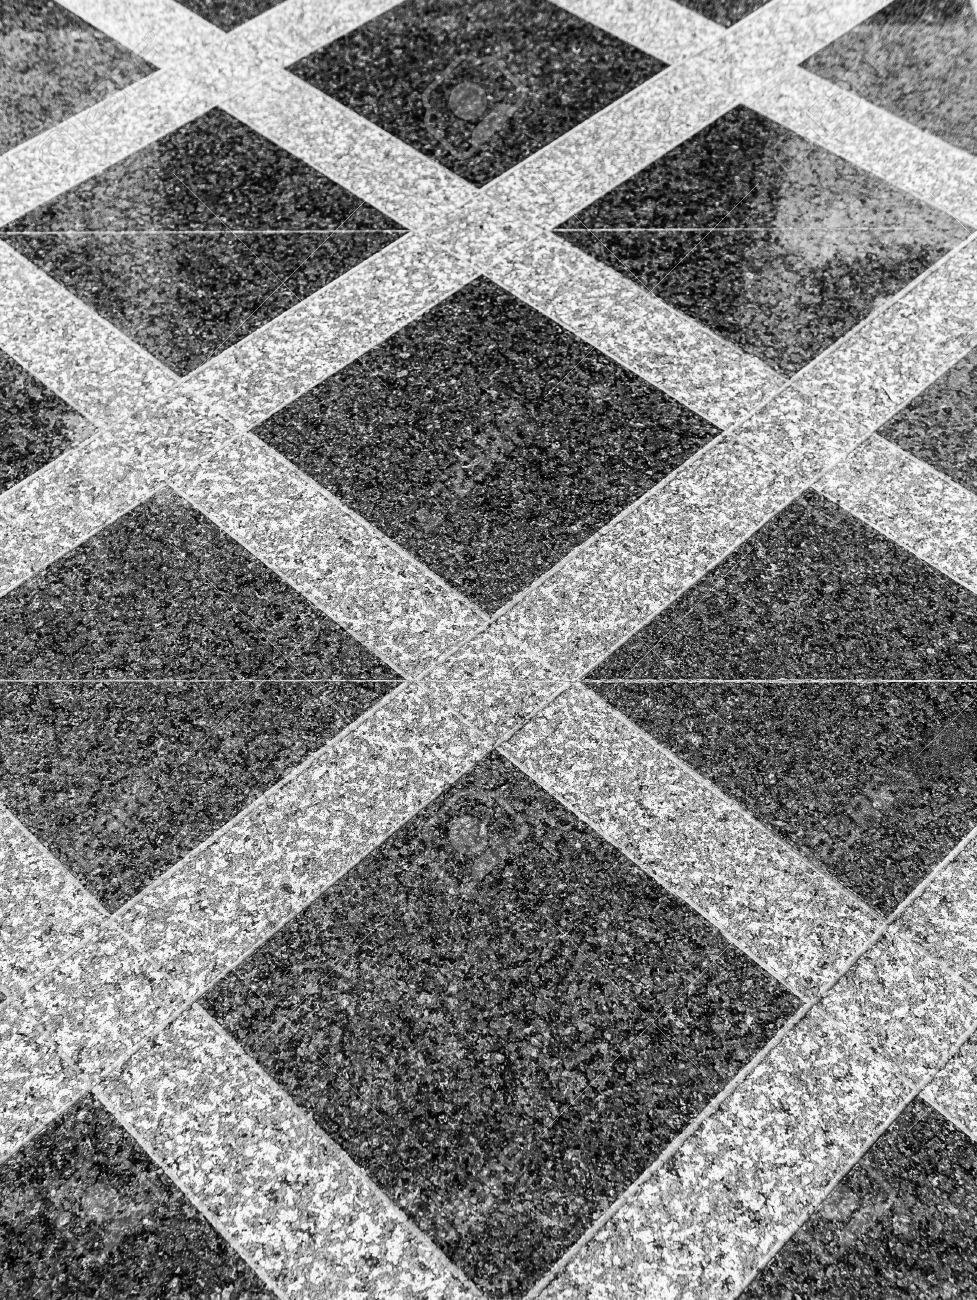 Marble Or Granite Floor Slabs For Outside Pavement Flooring Stock Photo Picture And Royalty Free Image Image 62347814